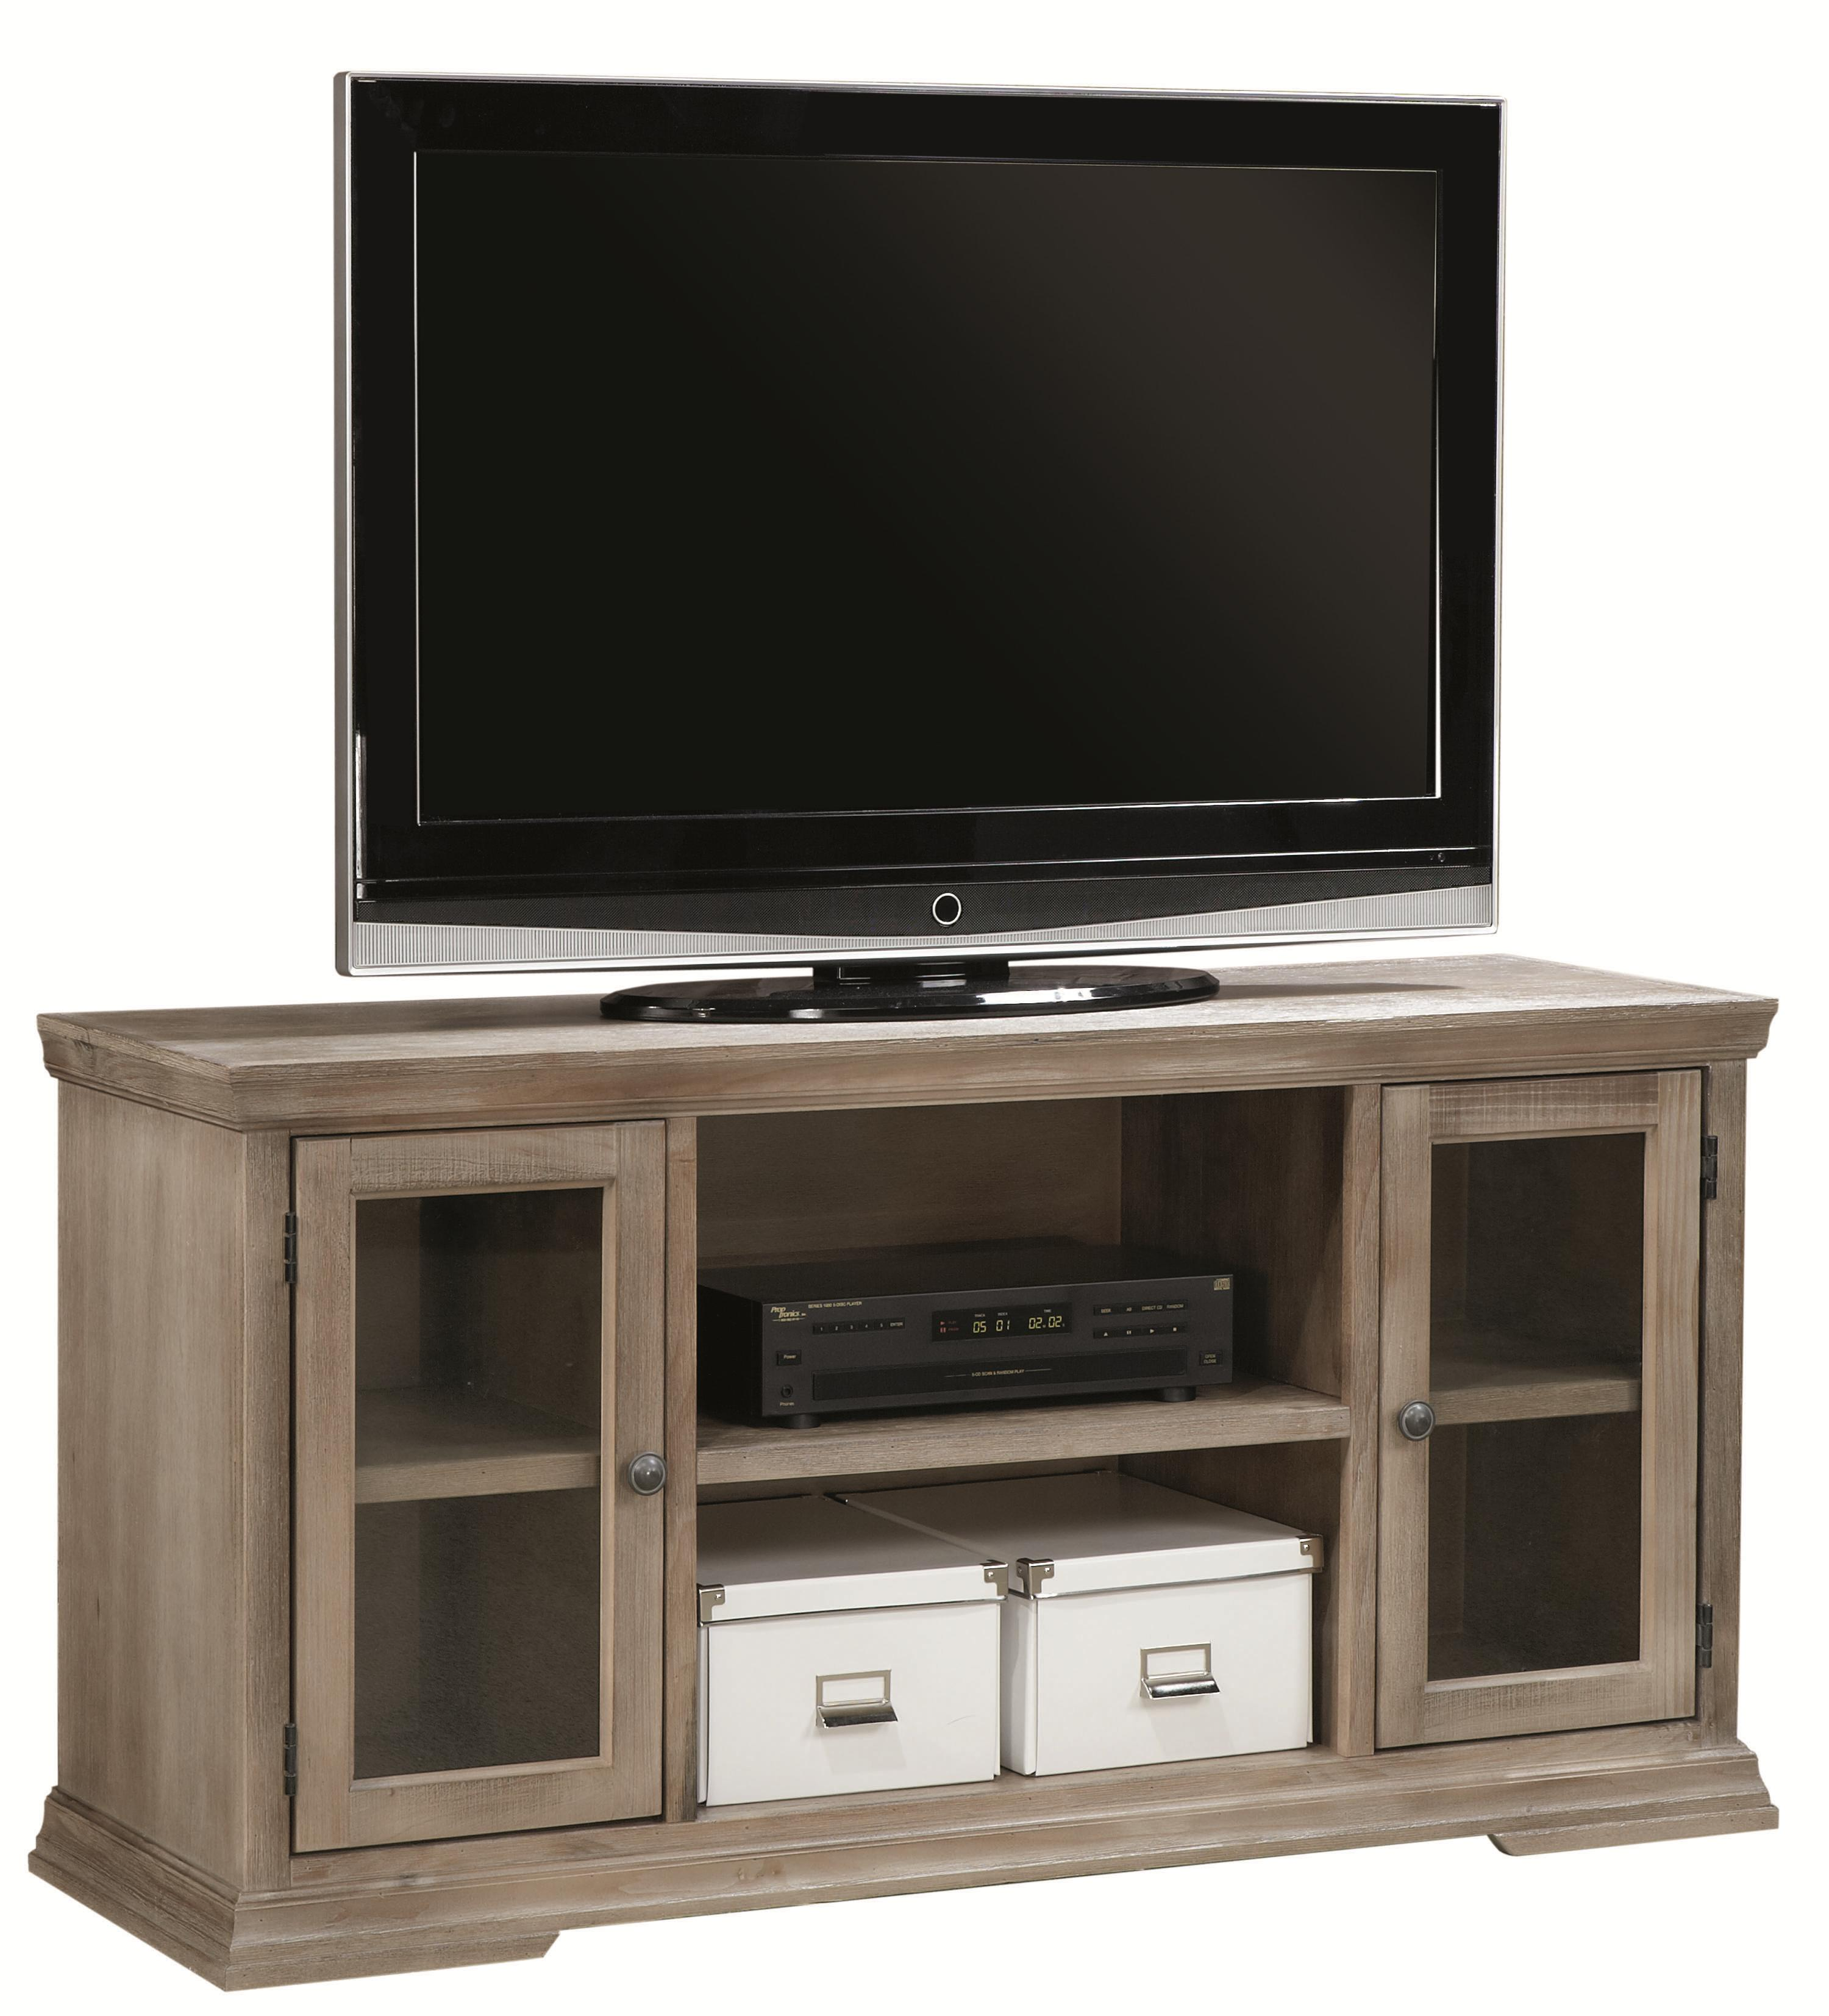 "Aspenhome Canyon Creek 55"" TV Console with 2 Doors  - Item Number: WCK1055-DRF"